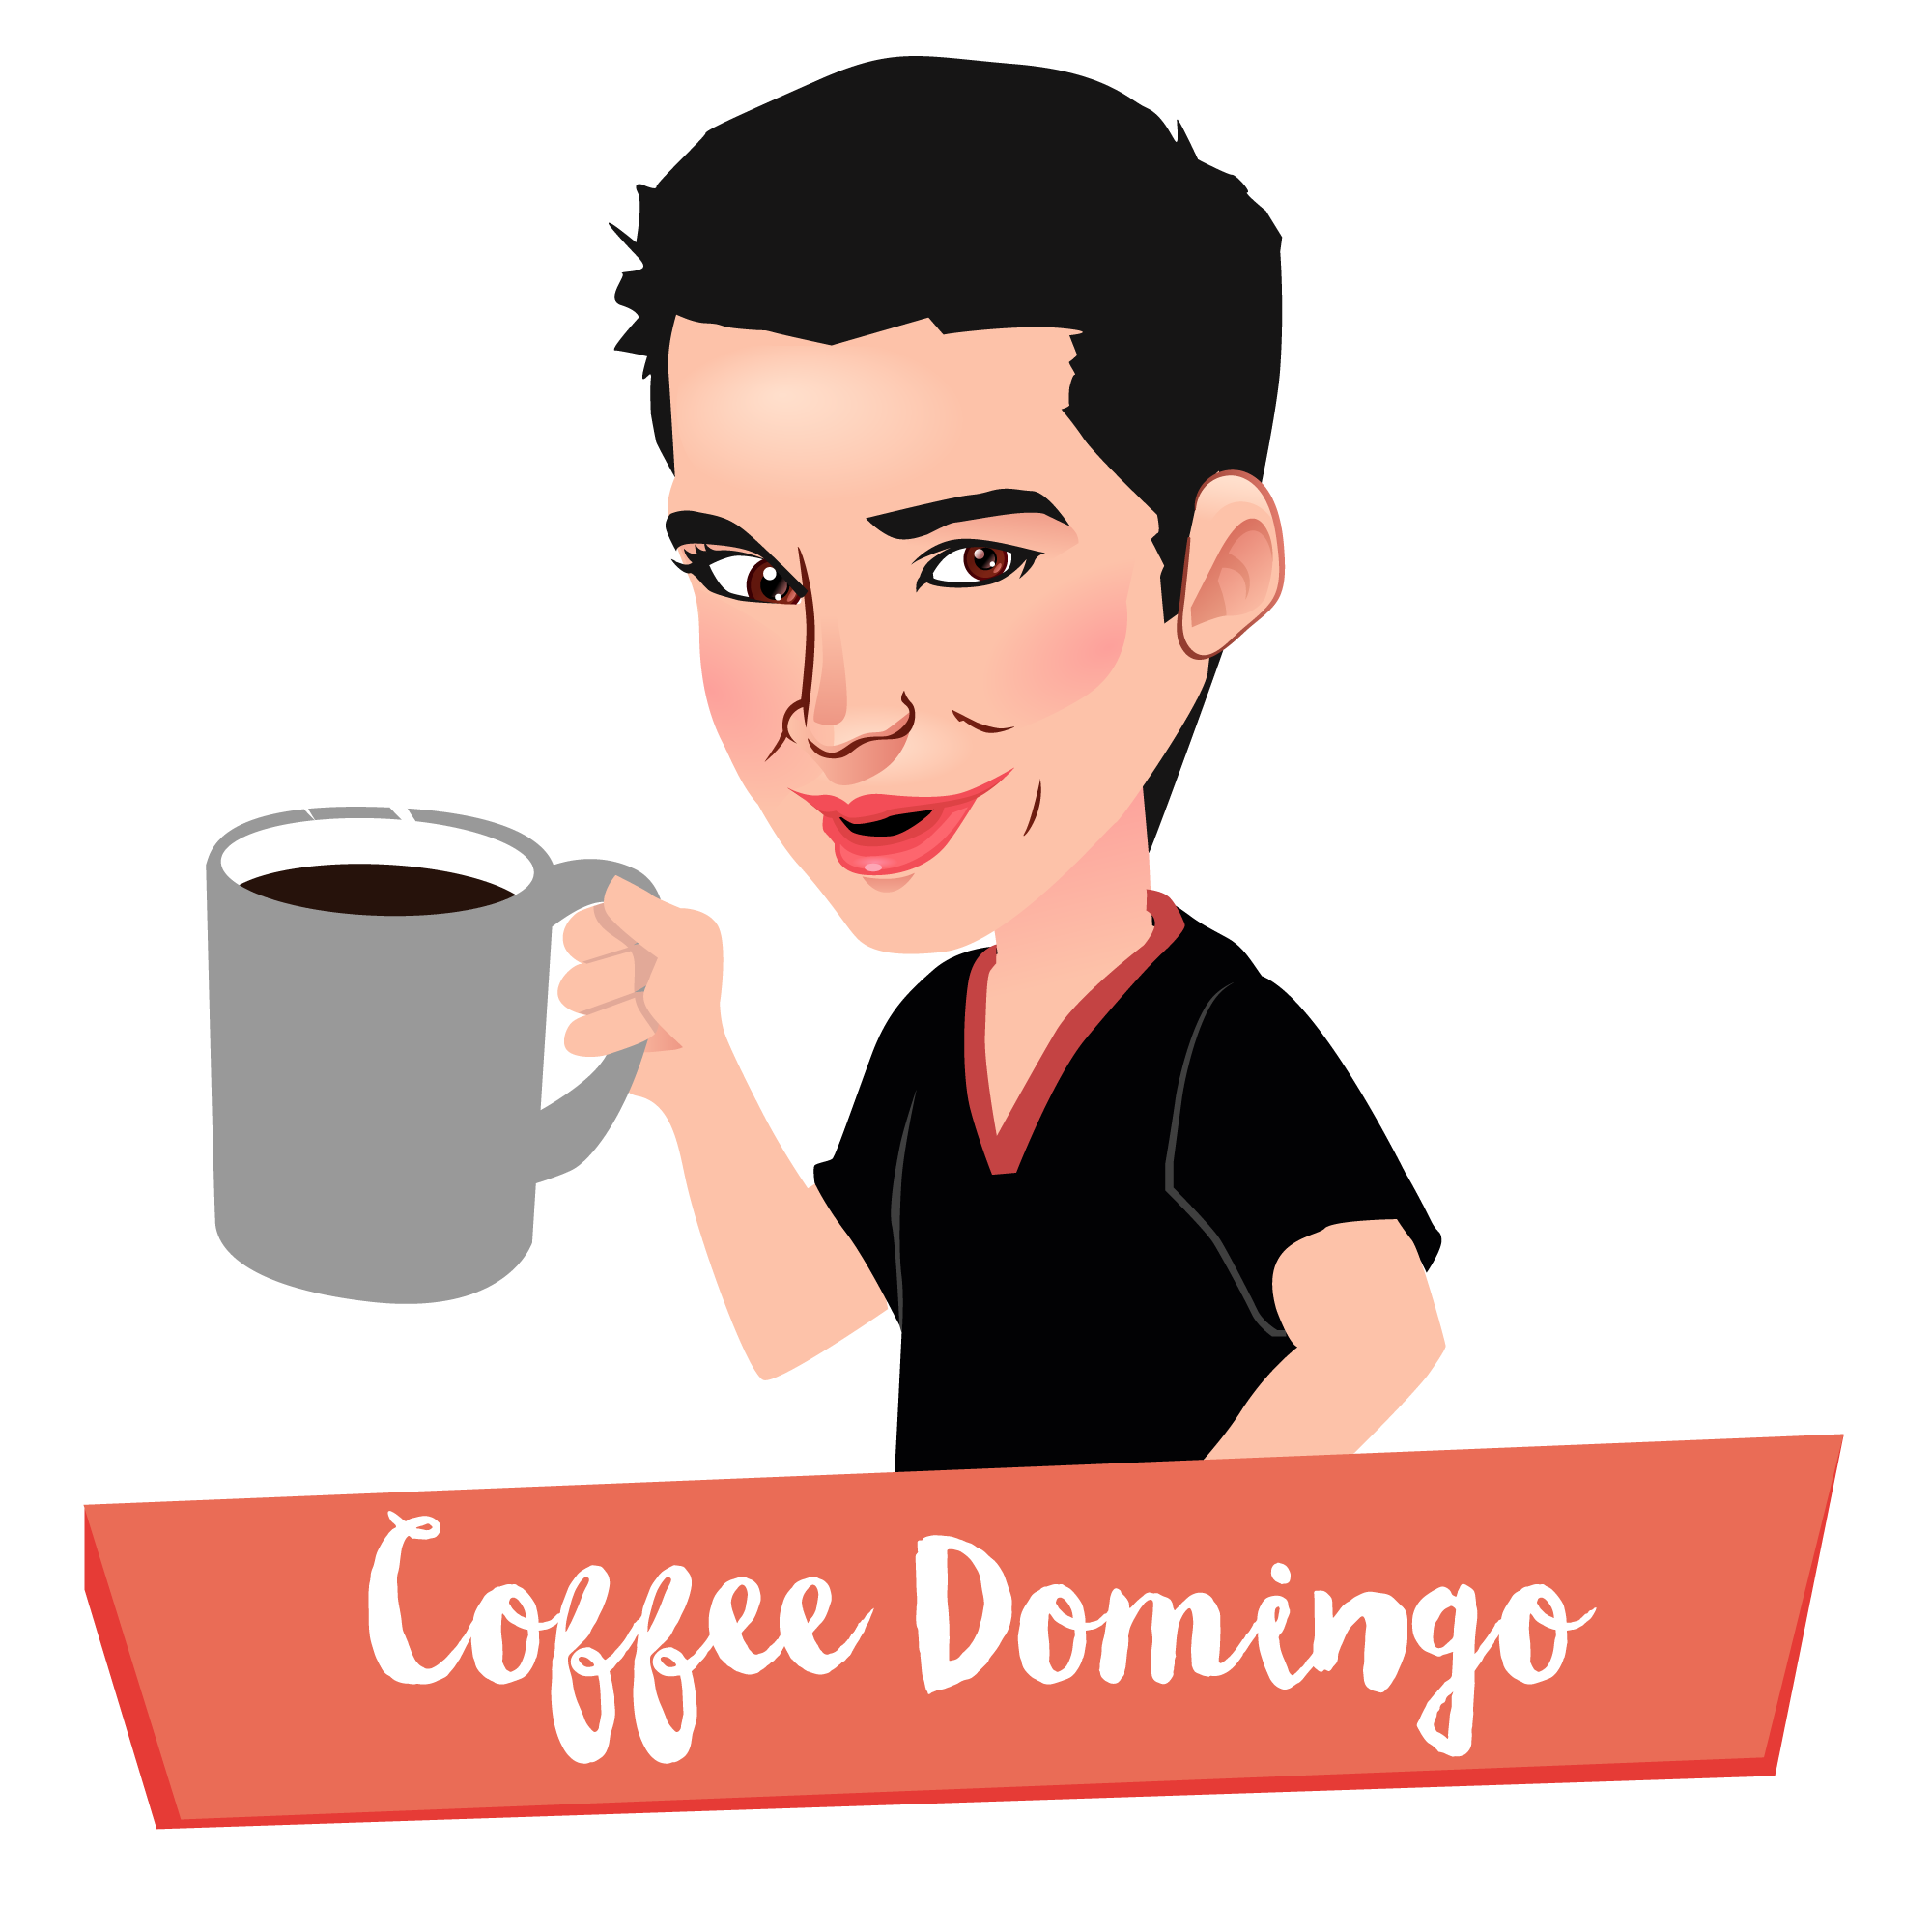 10 uri ng empleyadong pinoy Coffee Domingo